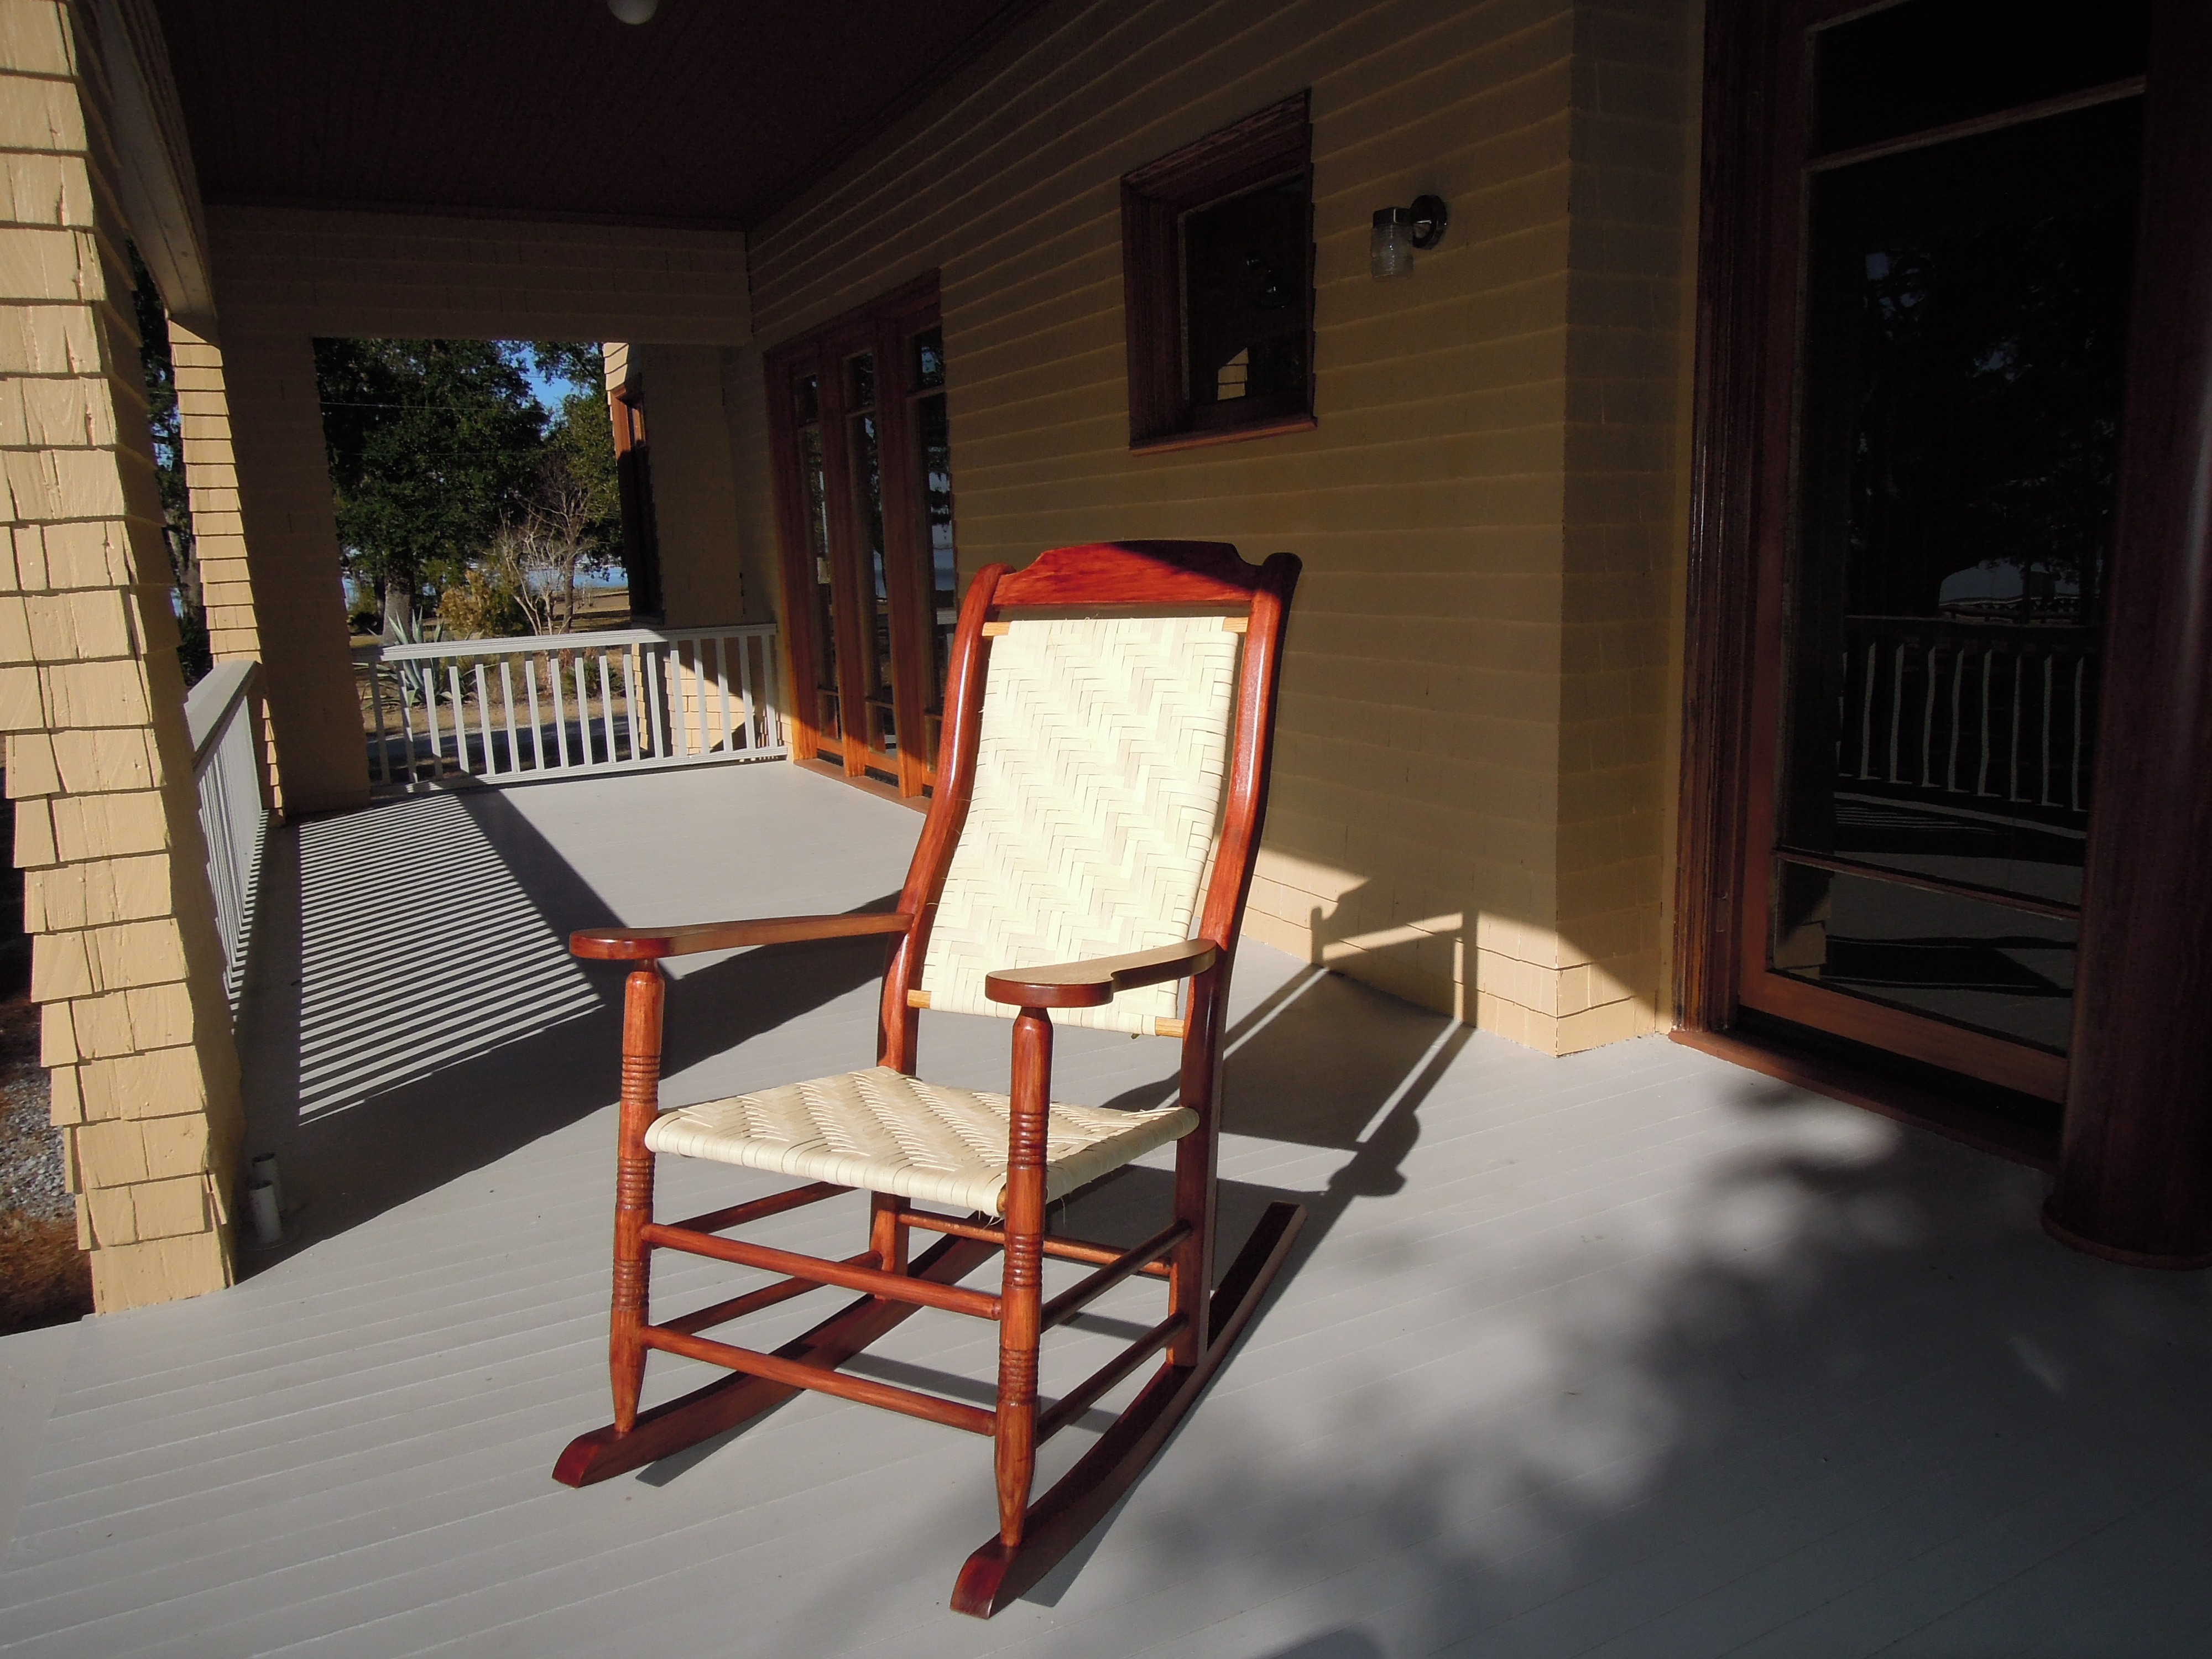 The Mississippi Department Of Archives And History Commissioned Six Rocking  Chairs To Be Made For The